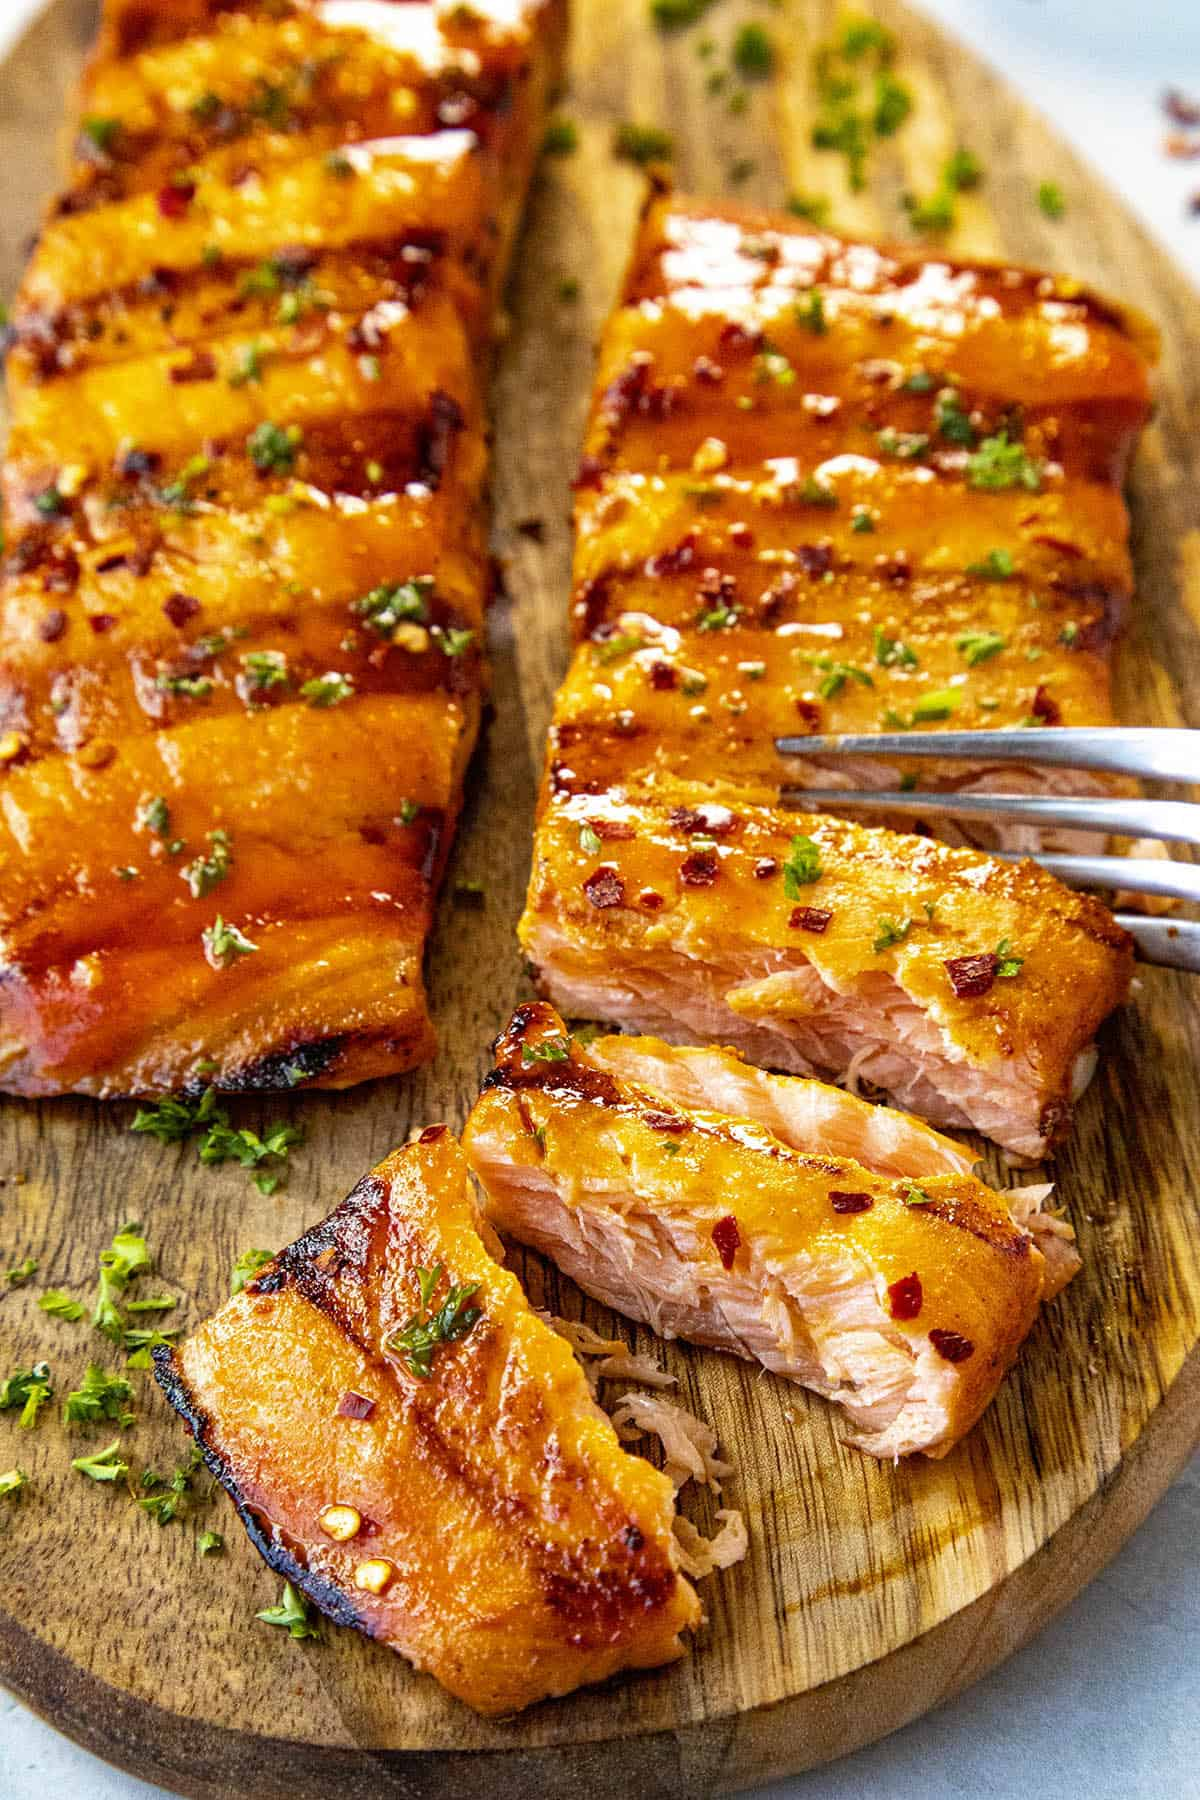 Grilled Salmon with Honey-Sriracha Sauce